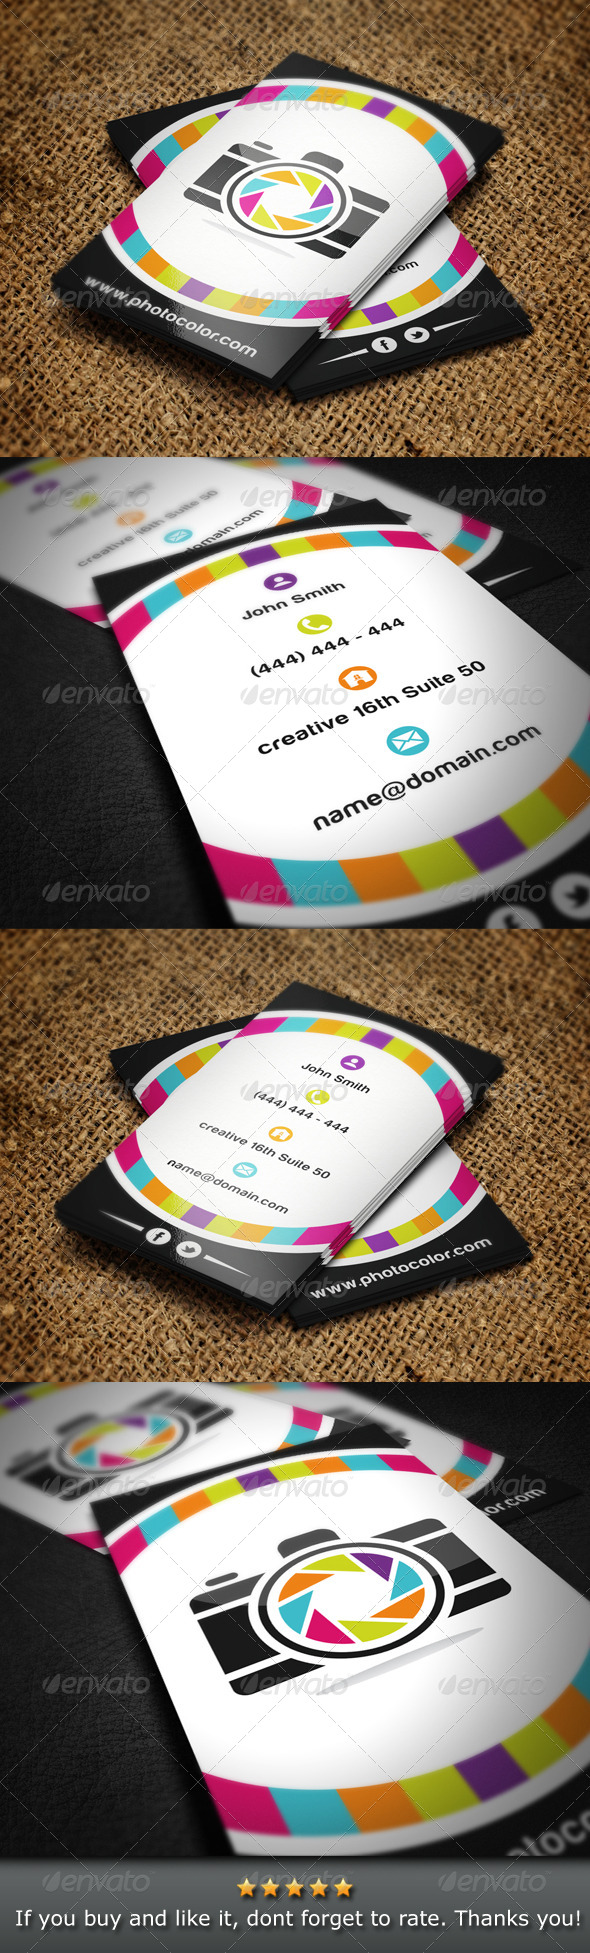 GraphicRiver Photographer Business Card 4790419